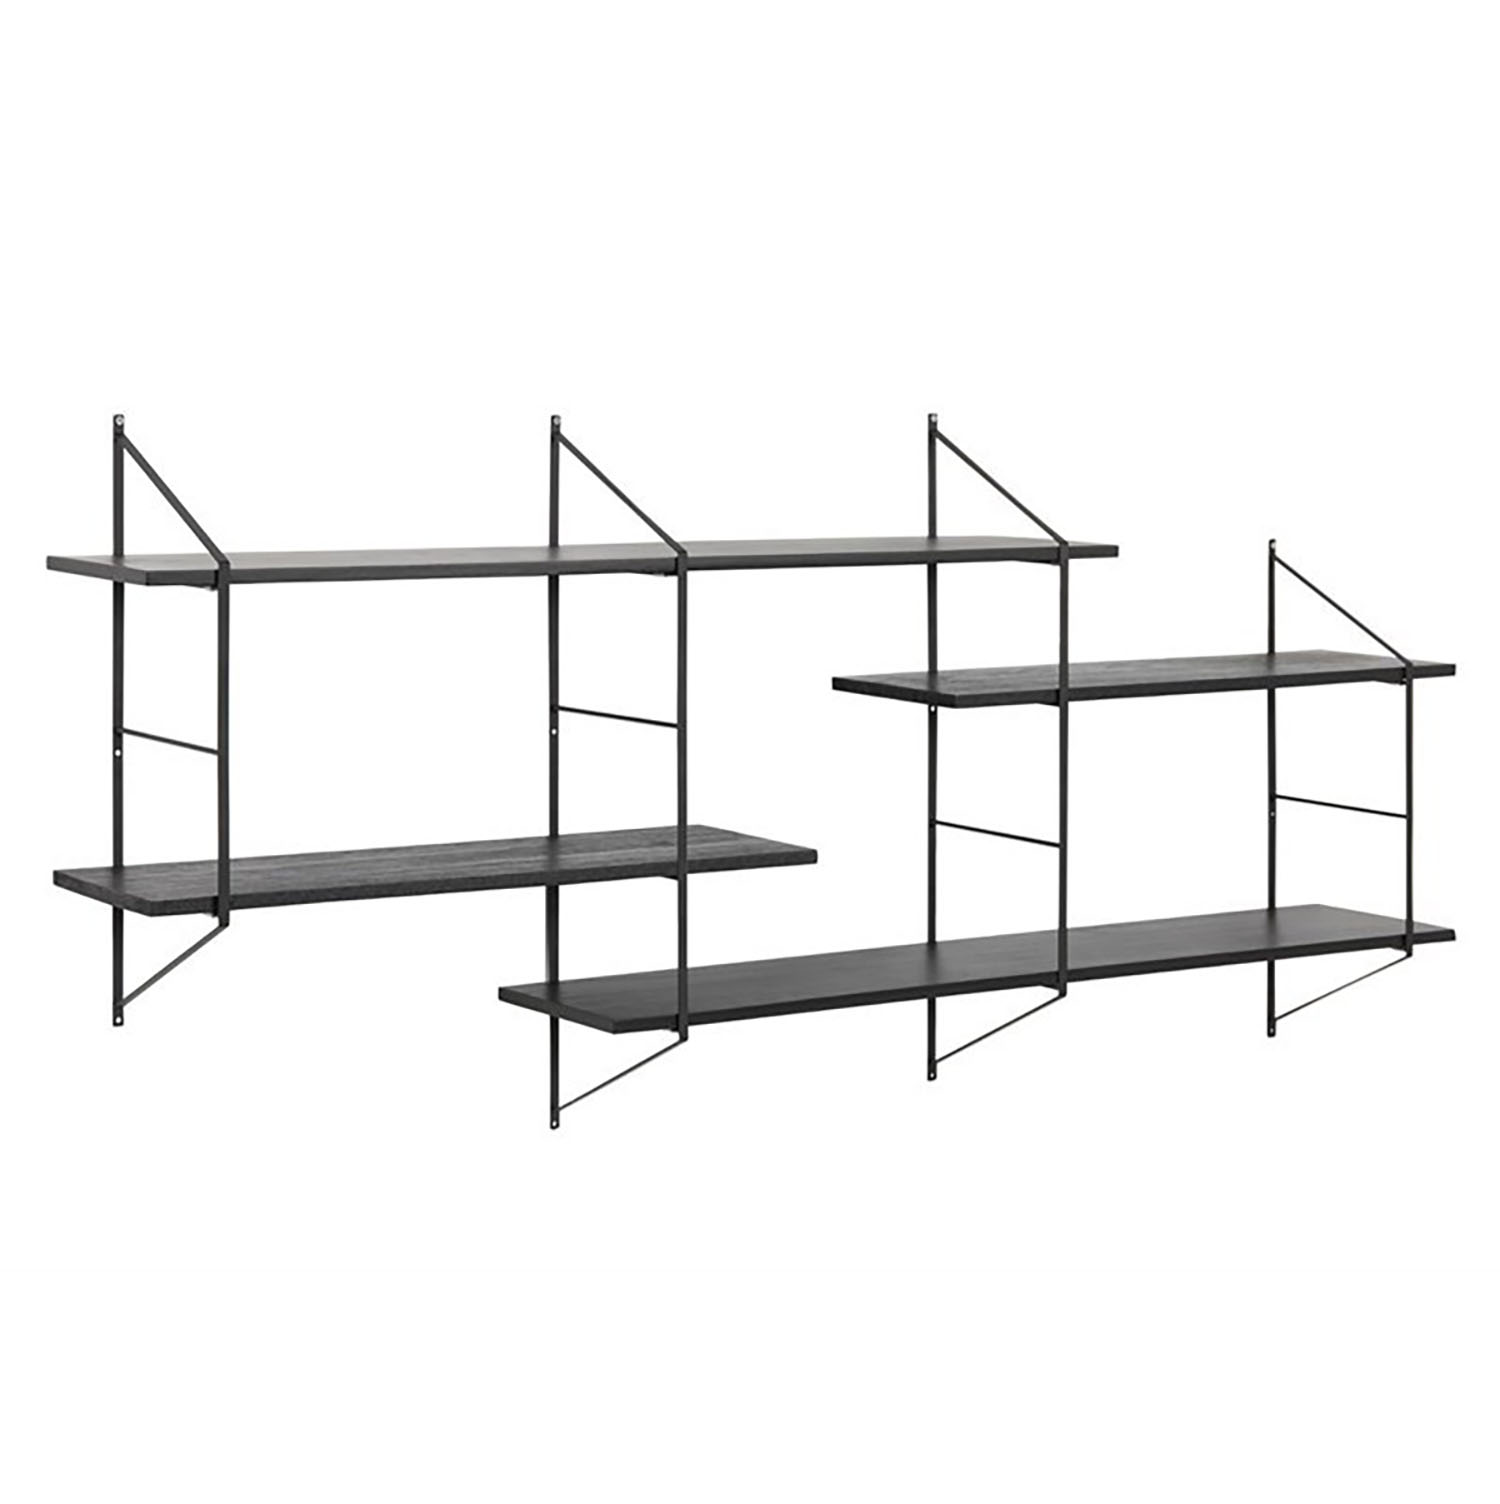 Benjamin Wall Unit 2 Black/Black